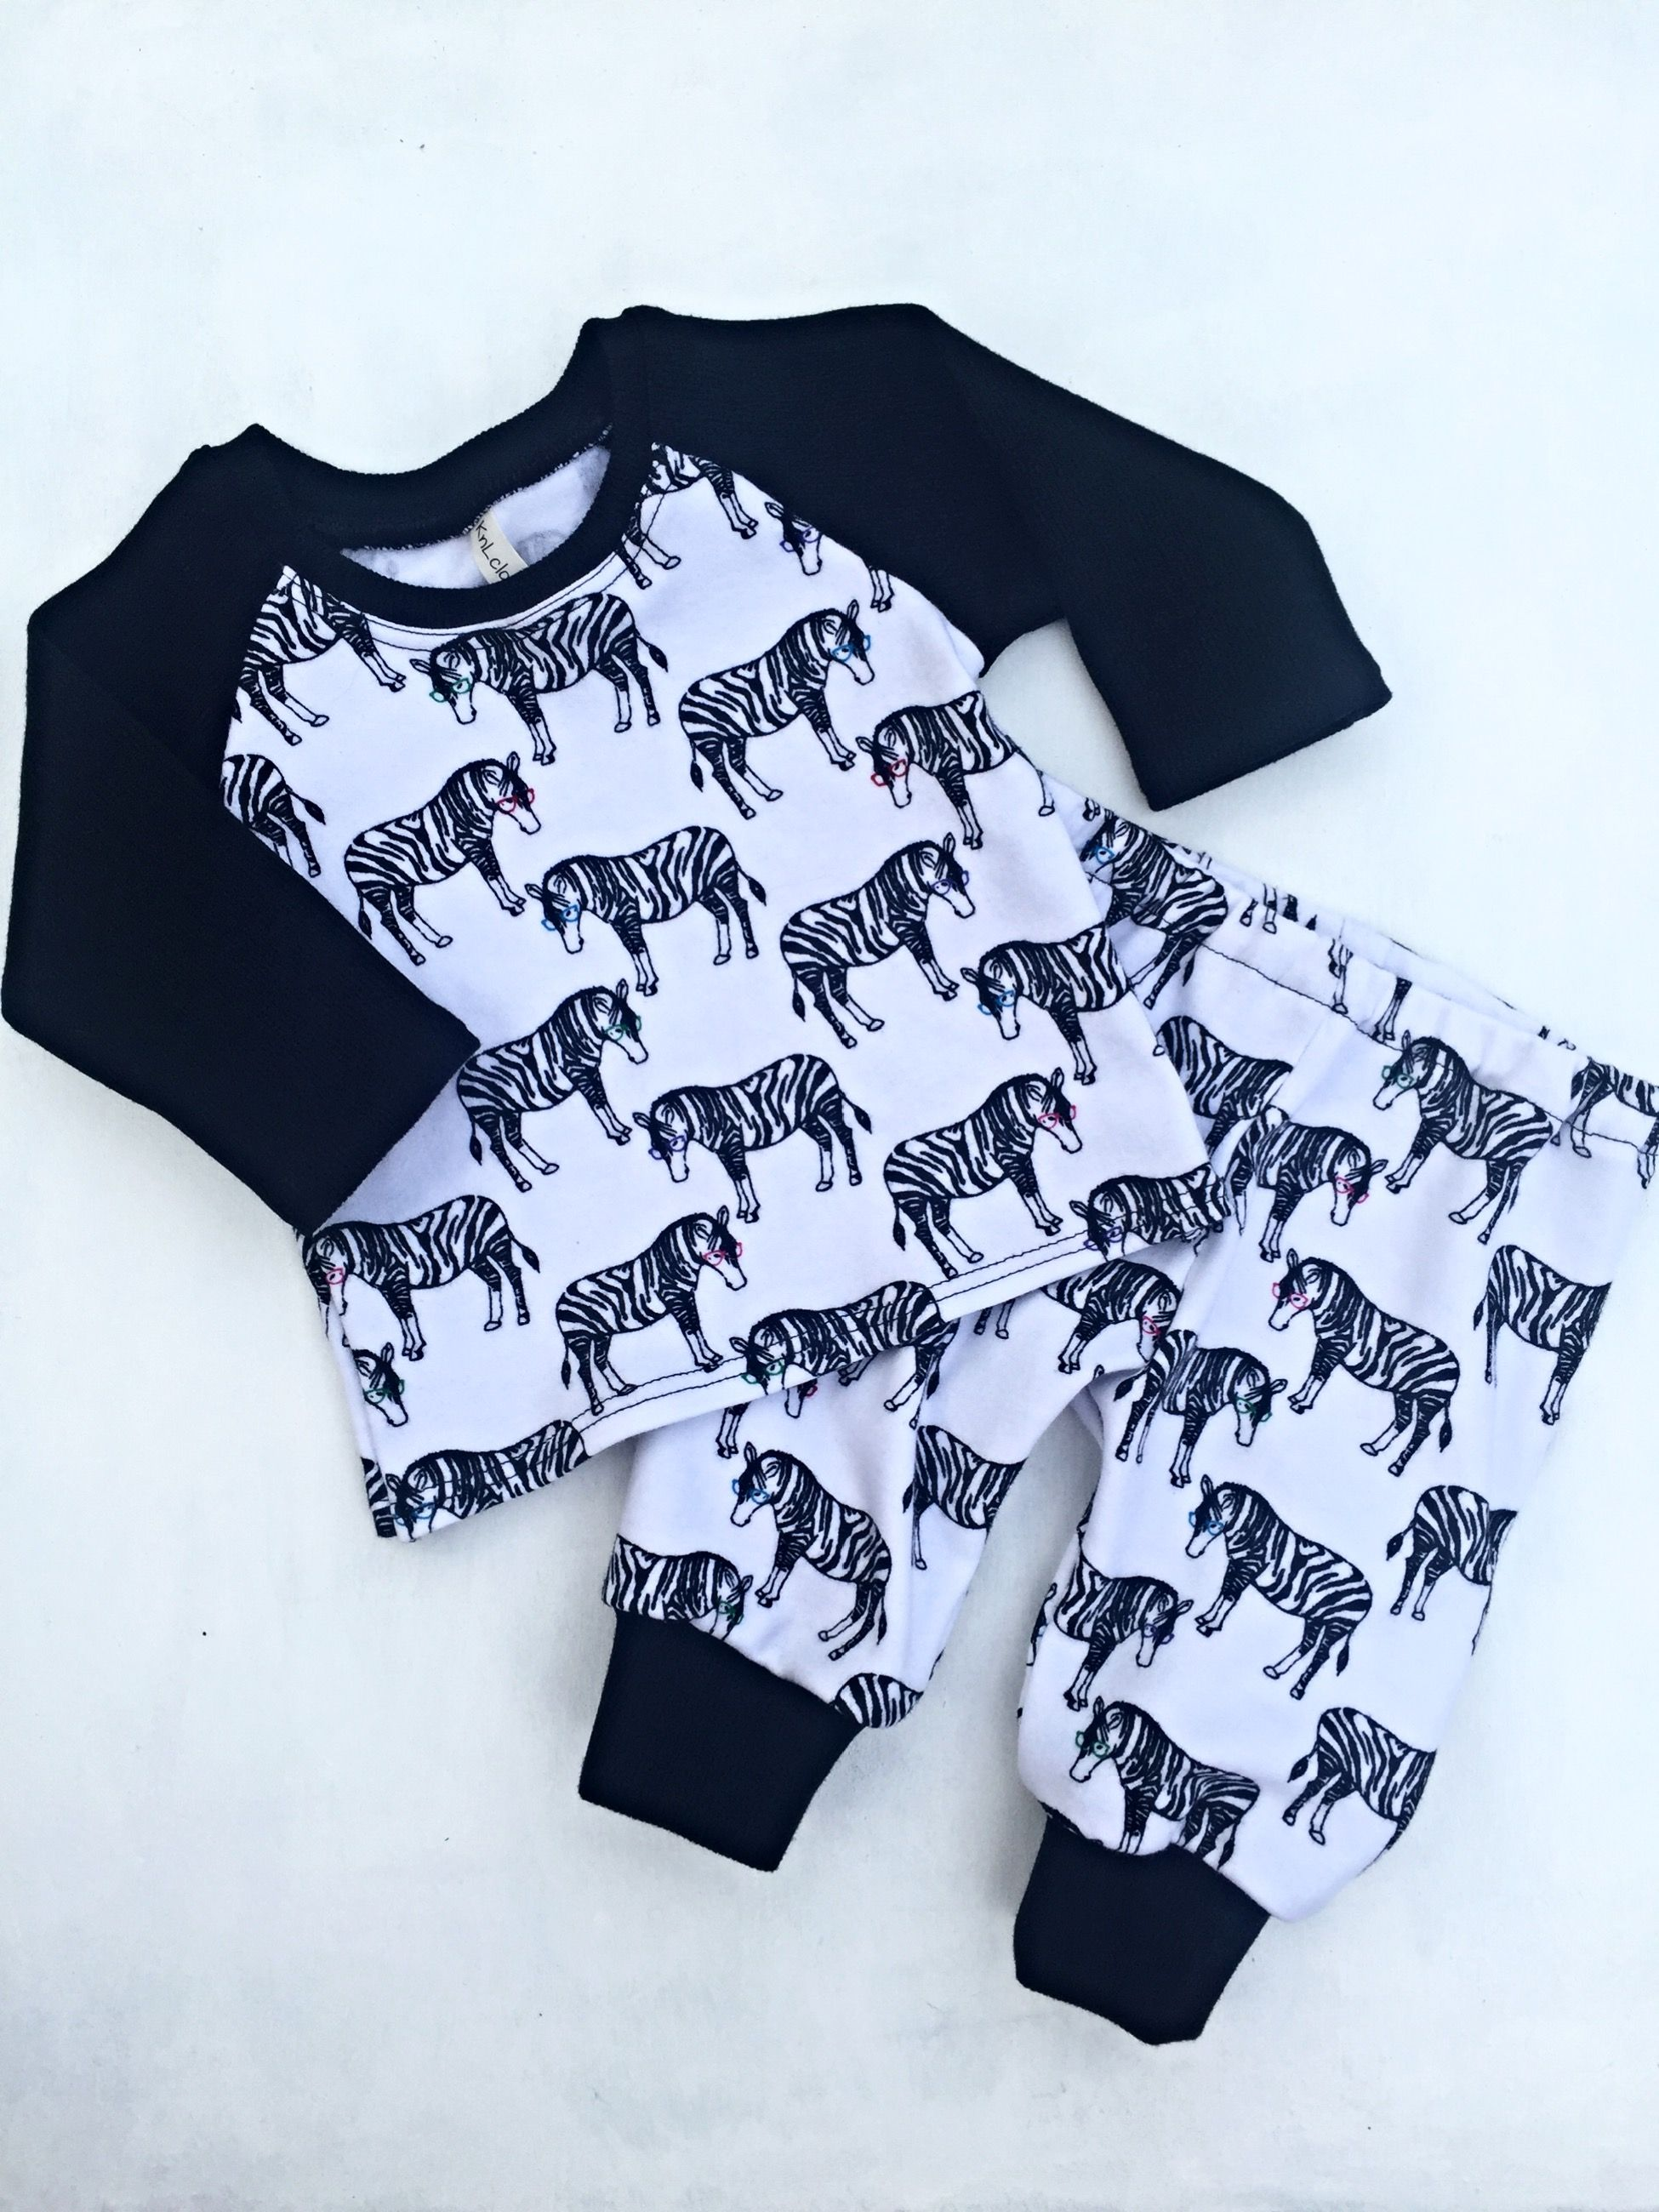 Zebra baby outfit raglan baby shirt toddler outfit cute baby clothes